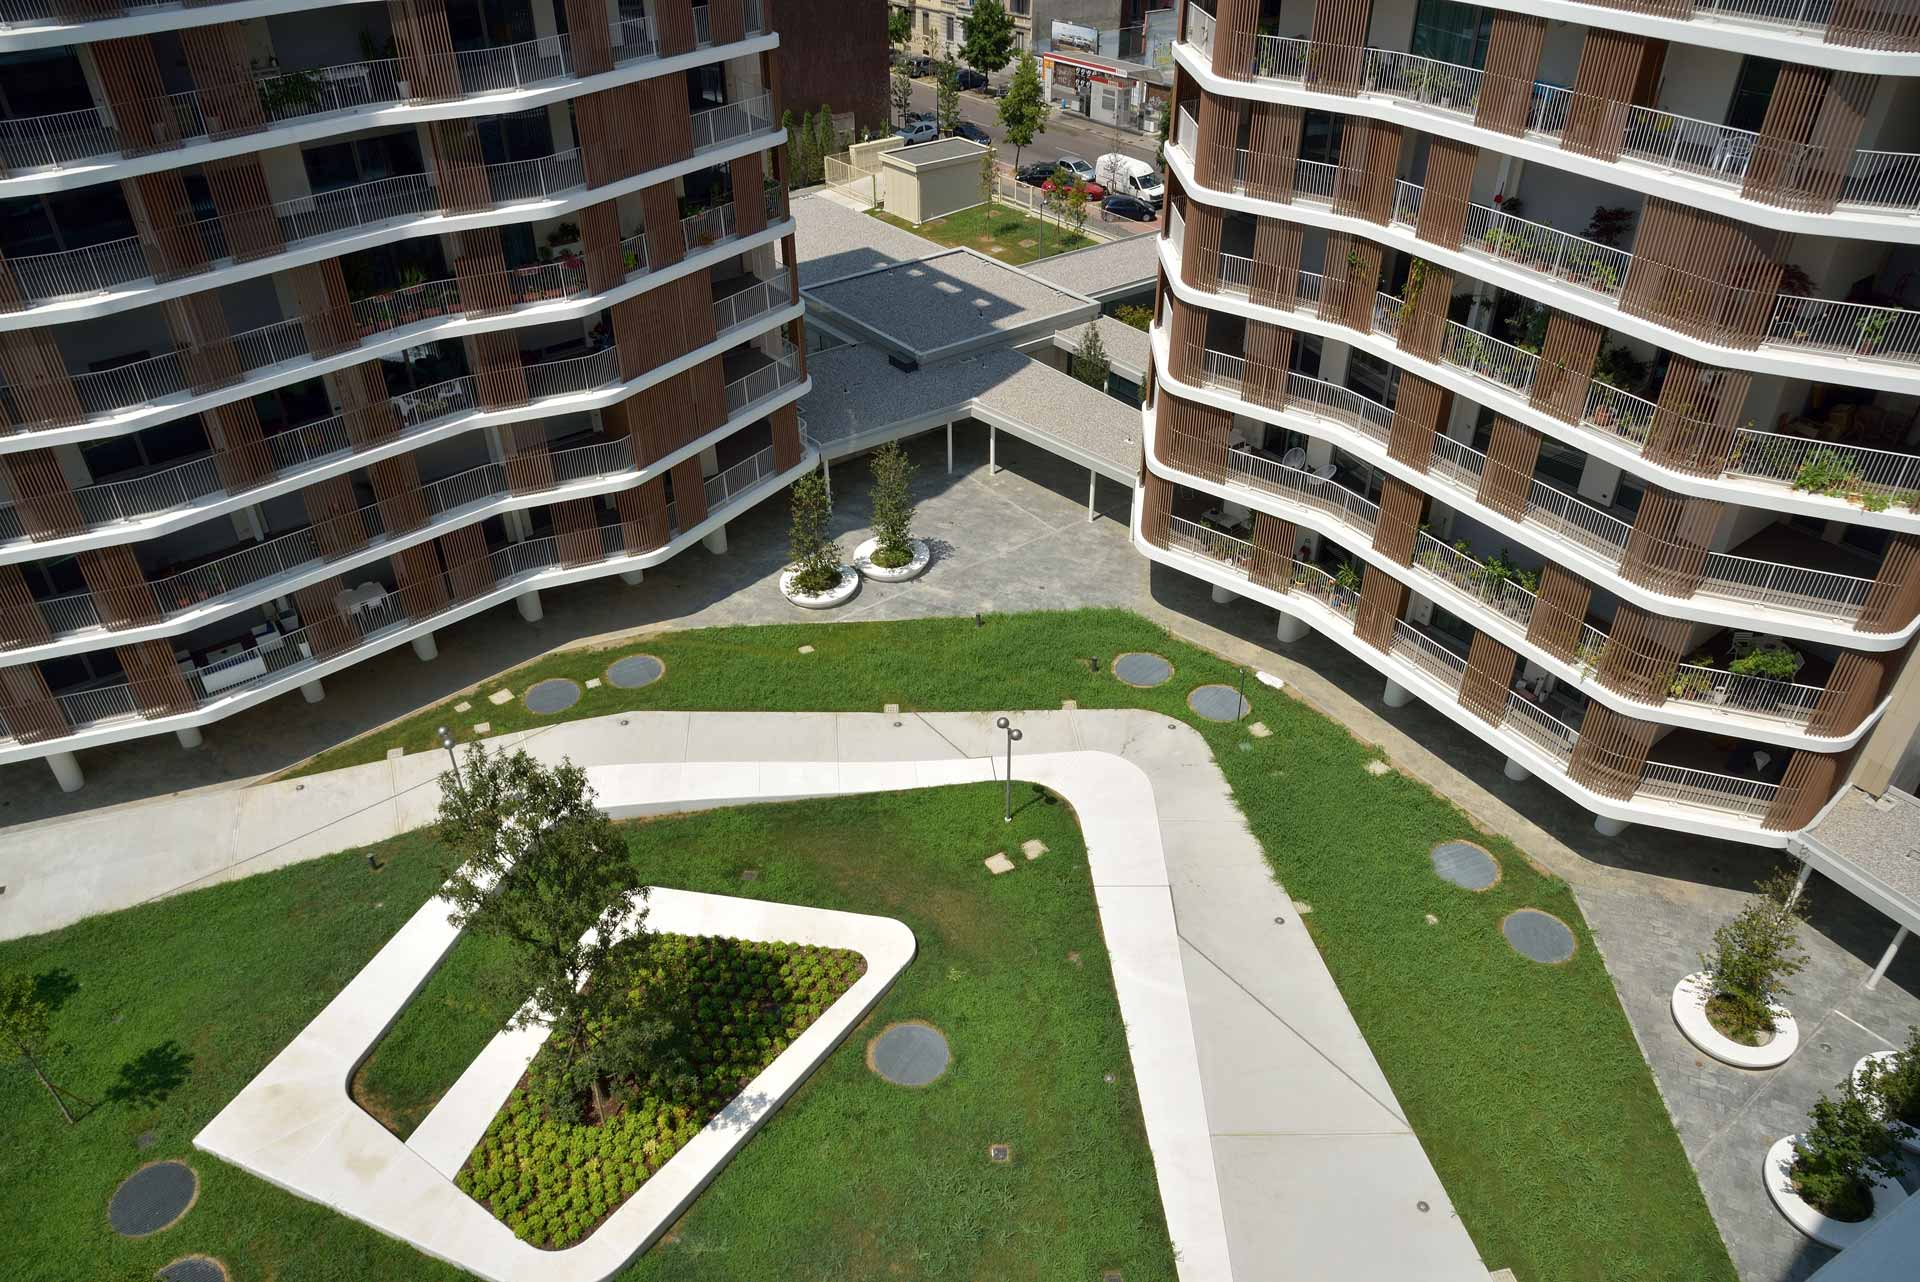 Frangisole per residence a Milano